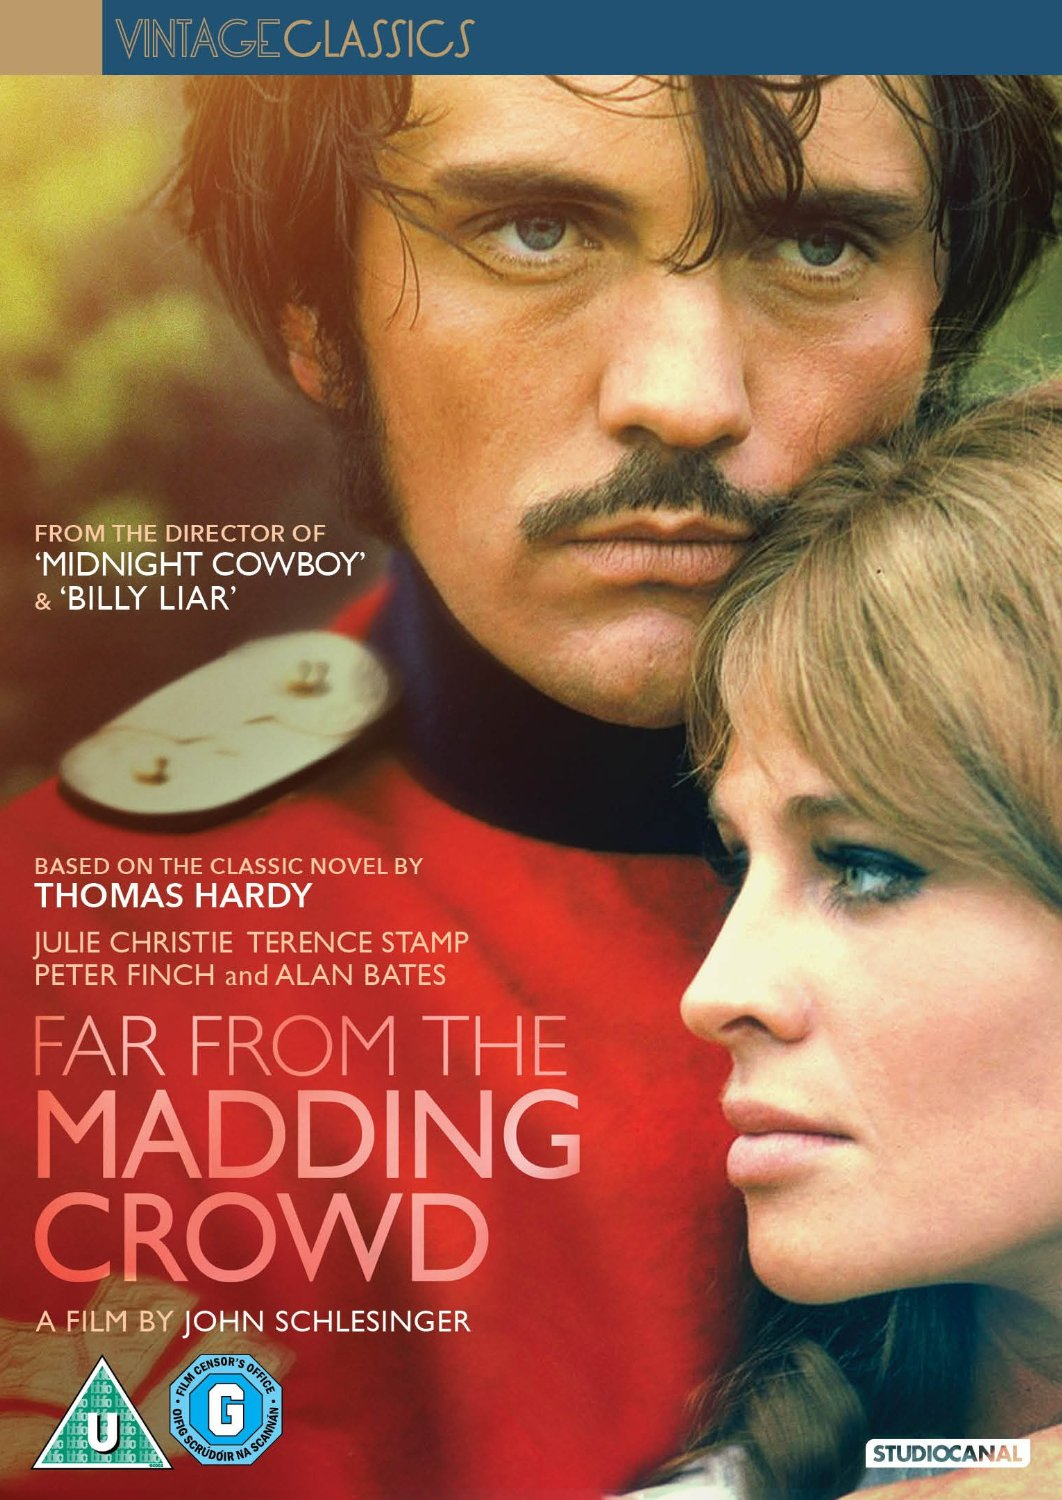 Buy Far from the Madding Crowd (also available on Blu-ray)